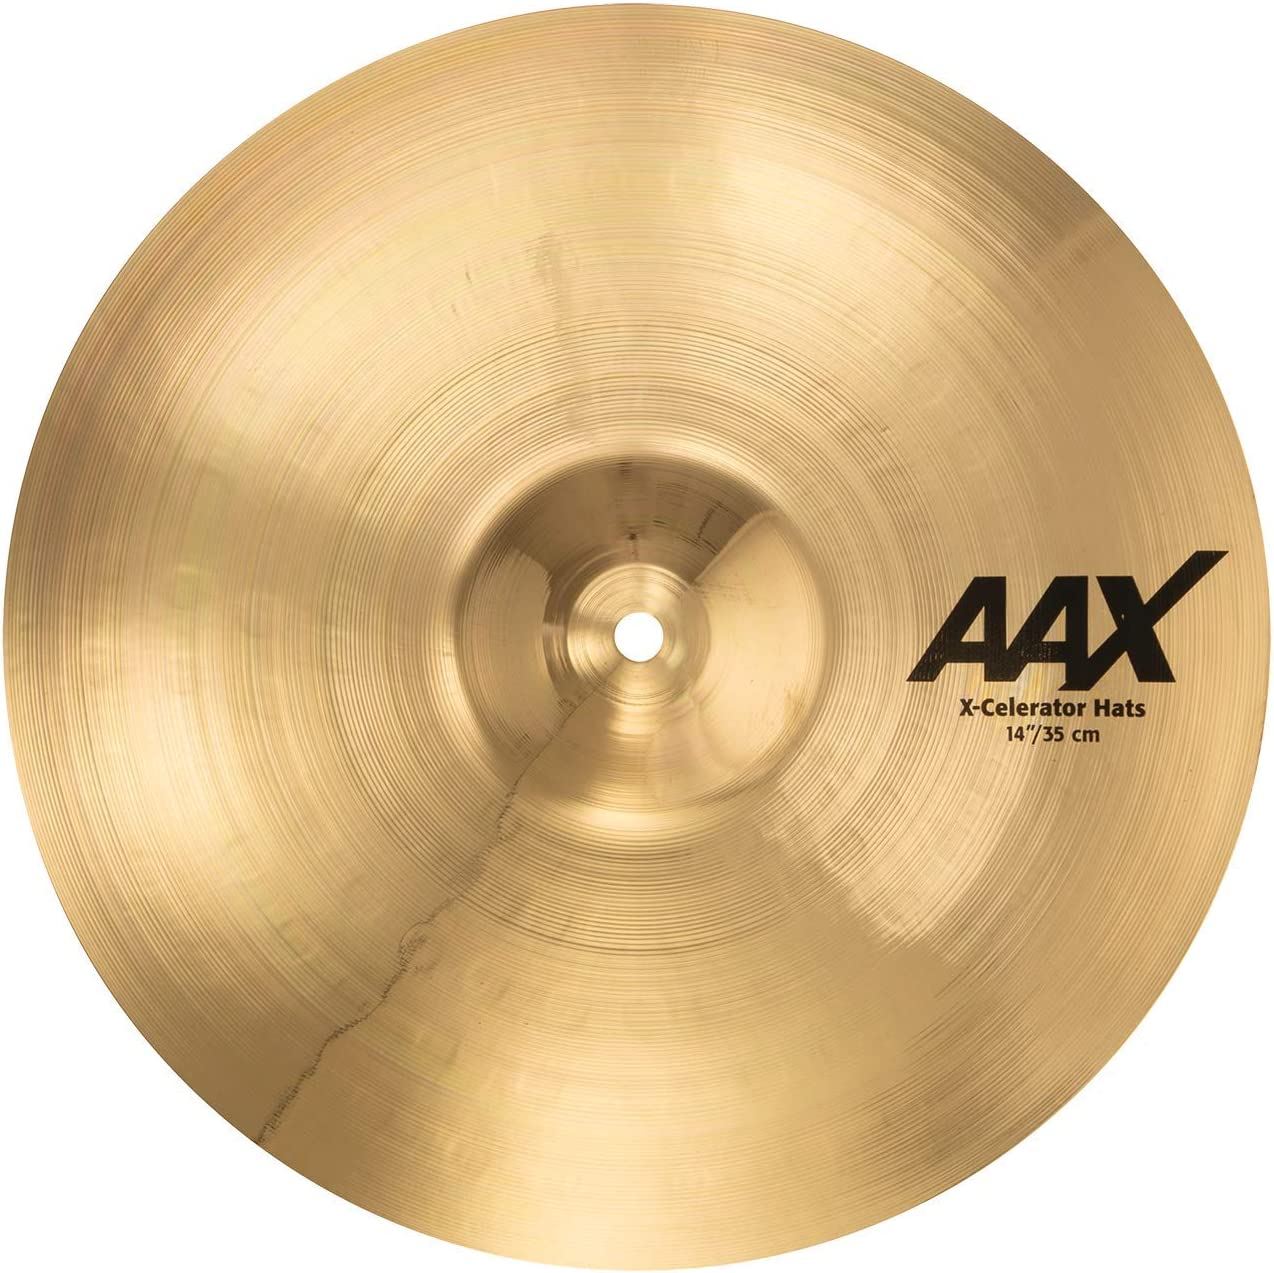 "Sabian 21402Xlb Aax 14"" X-Celerator Hi-Hats, Brilliant Finish"